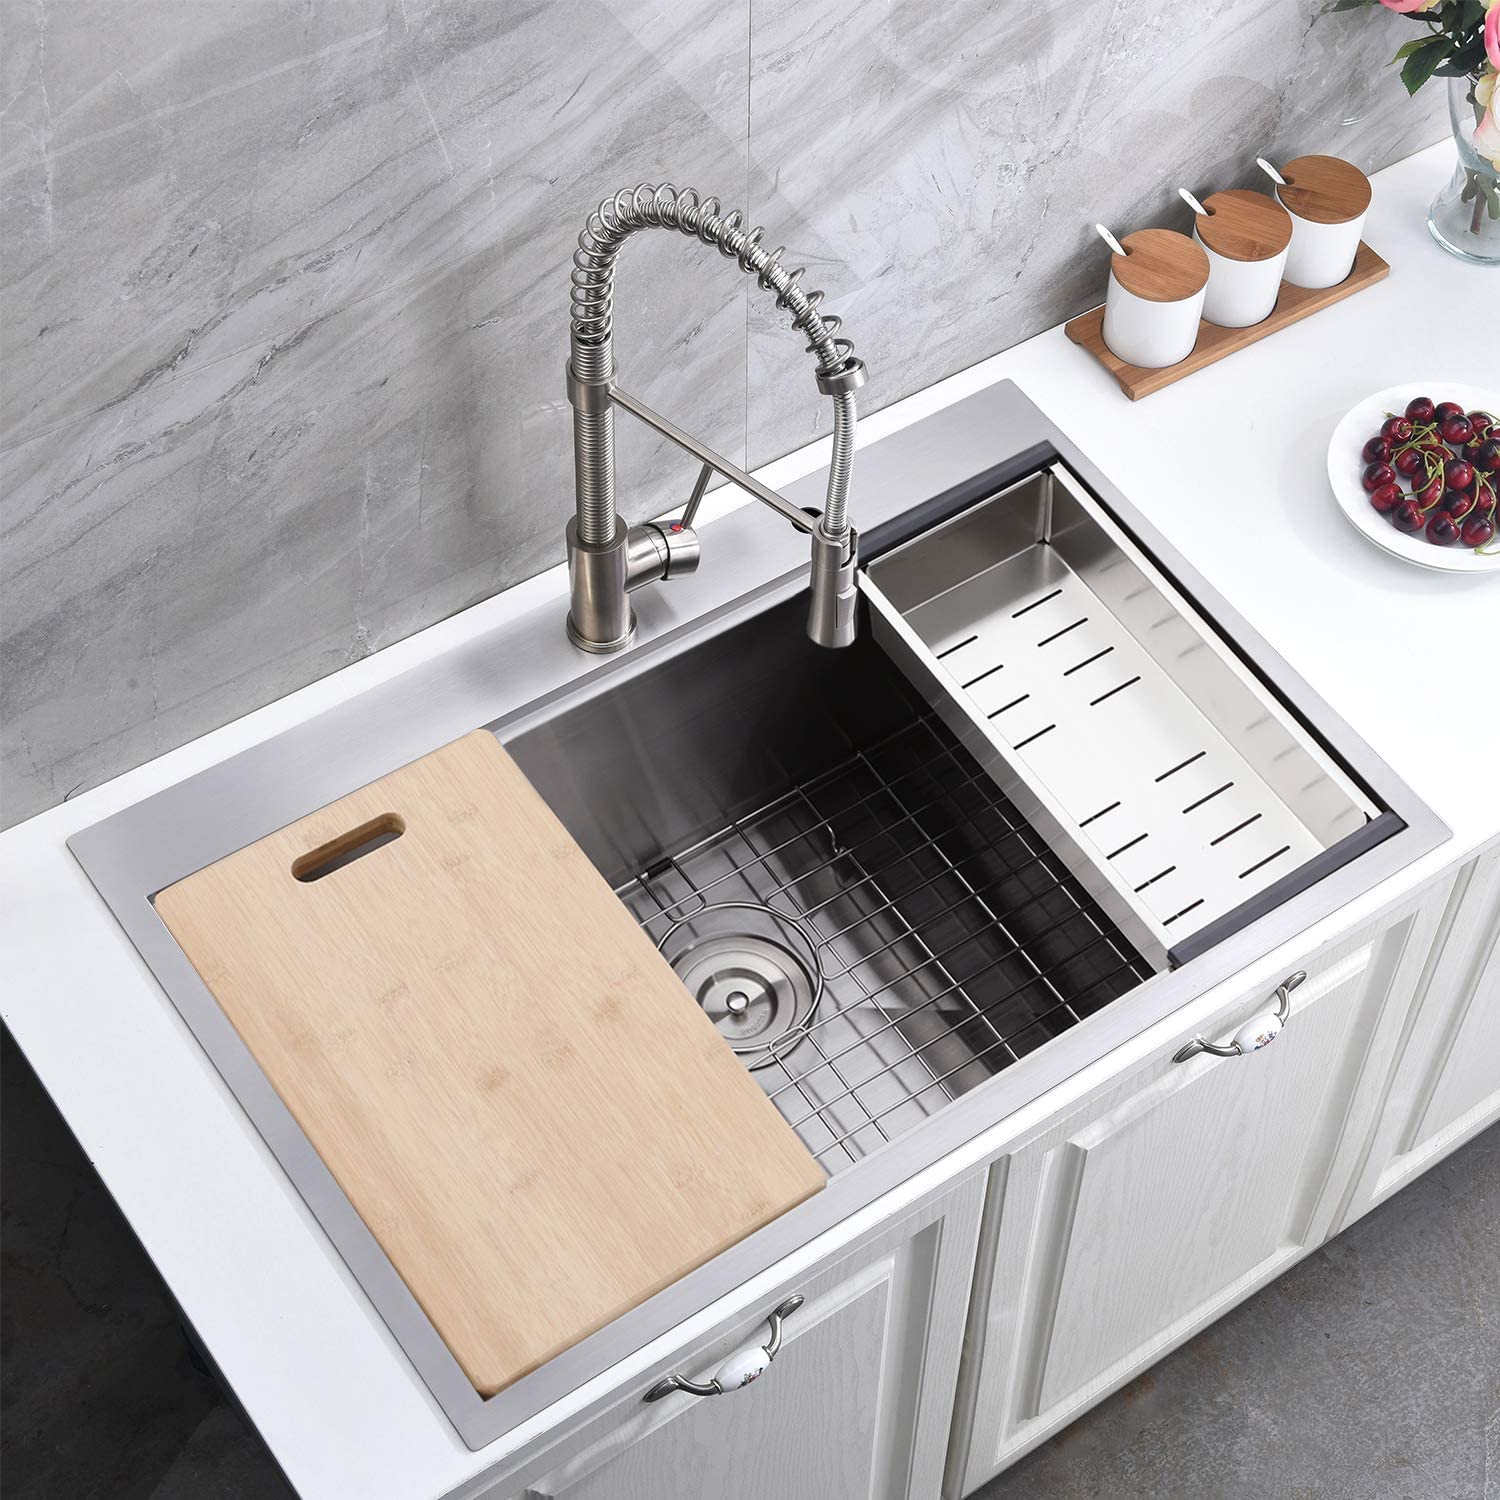 Friho 25x 22 Inch 18 Gauge Topmount Single Bowl Basin Handmade SUS304 Stainless Steel Drop in Kitchen Sink,Brushed Nickel Kitchen Sinks With Dish Grid,Dish Drainer,Cutting Board and Basket Strainer